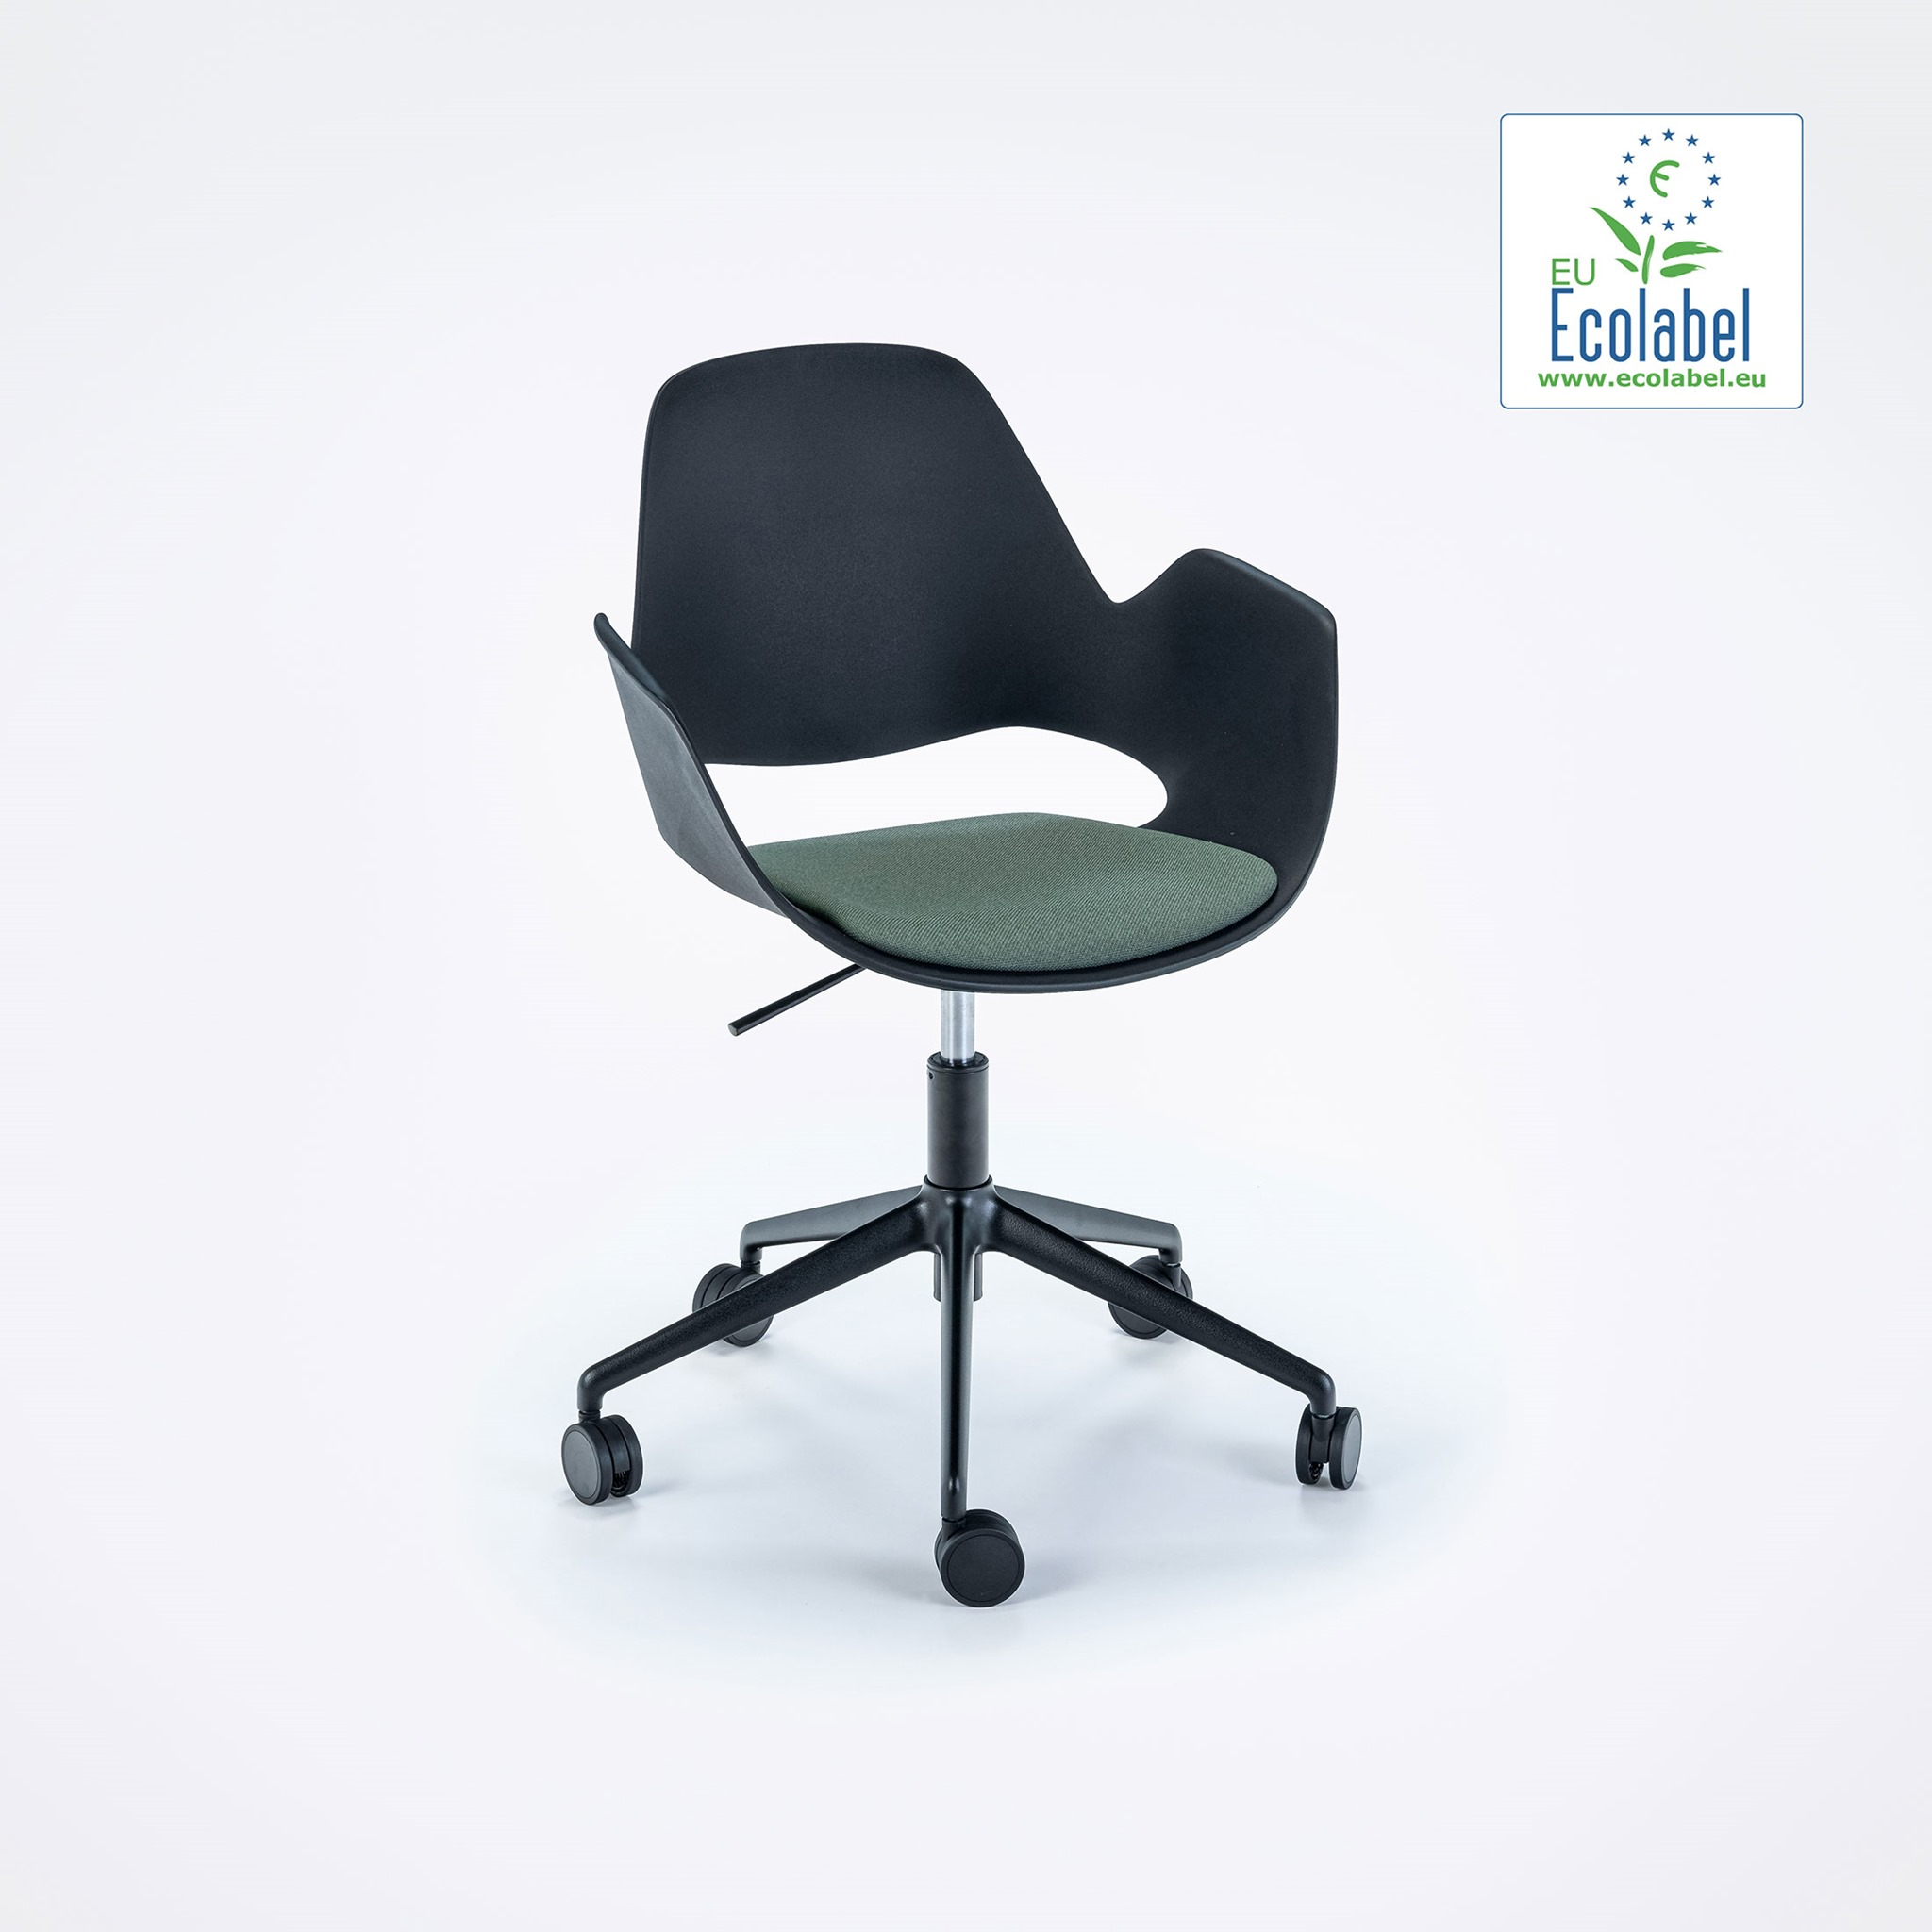 DINING ARMCHAIR // PADDED SEAT // Dark green // castors // 5 star swivel base